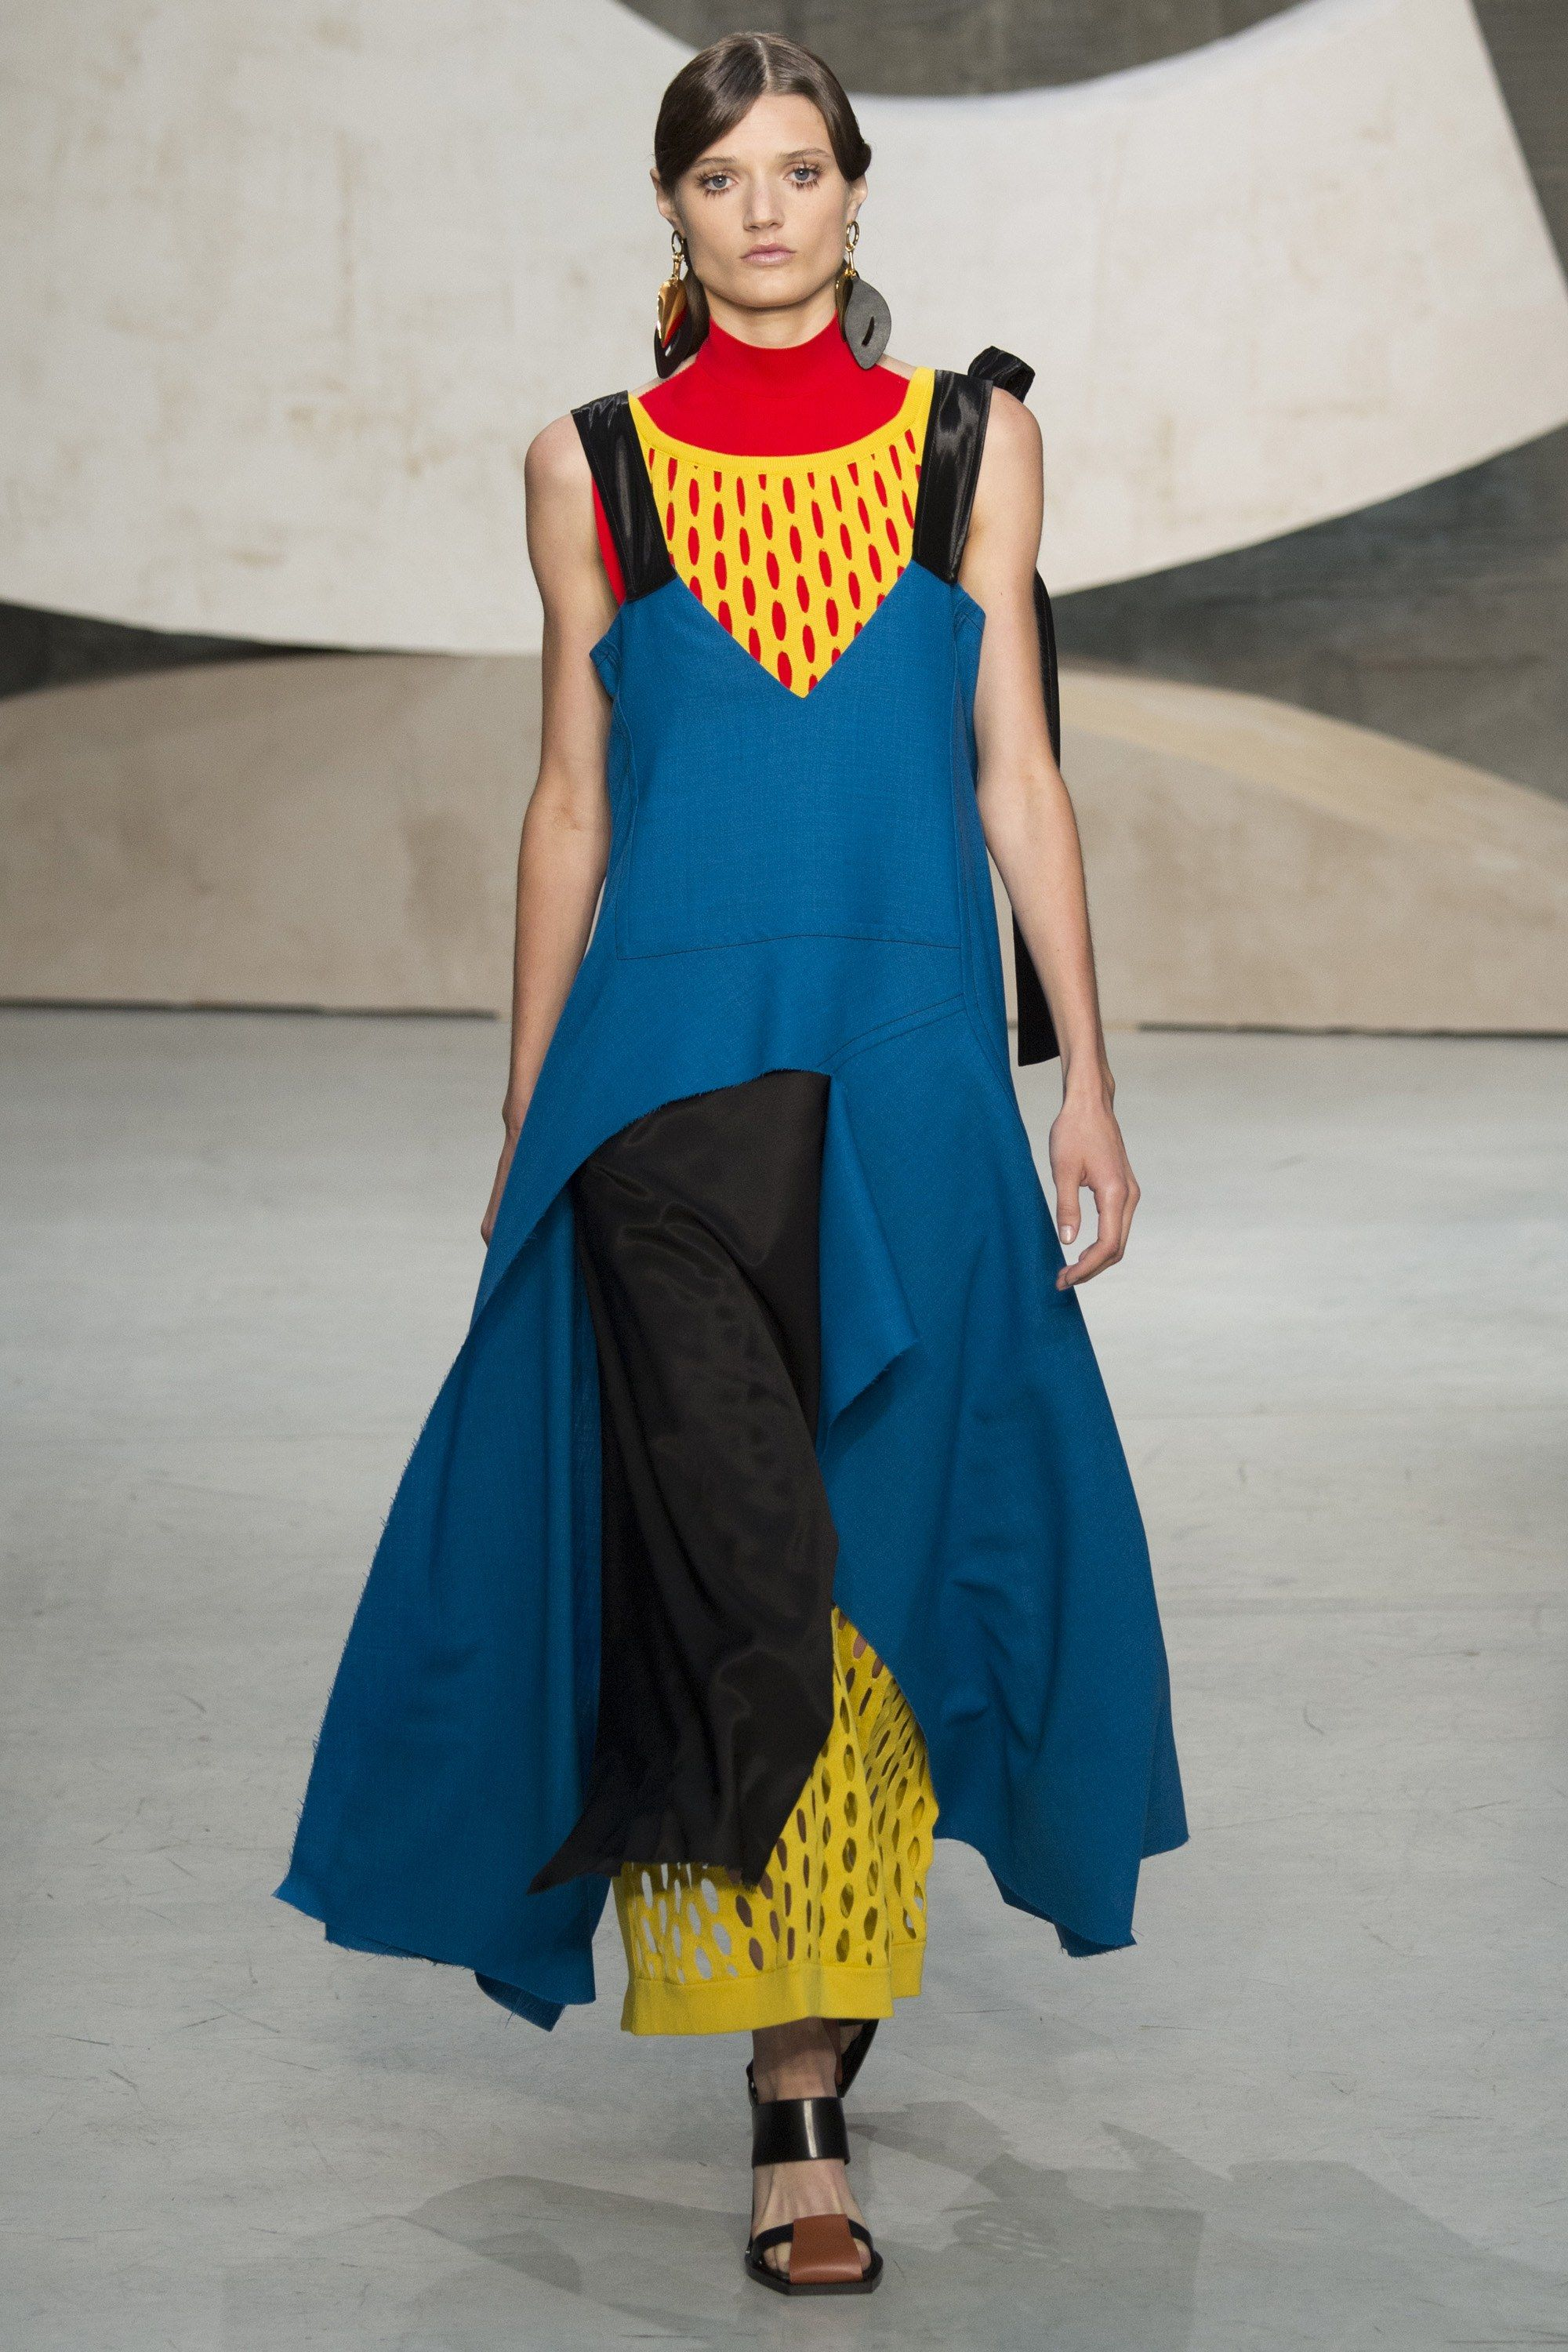 1eccd952b3e4f Marni Spring 2016 Ready-to-Wear Fashion Show - Olivia Jansing